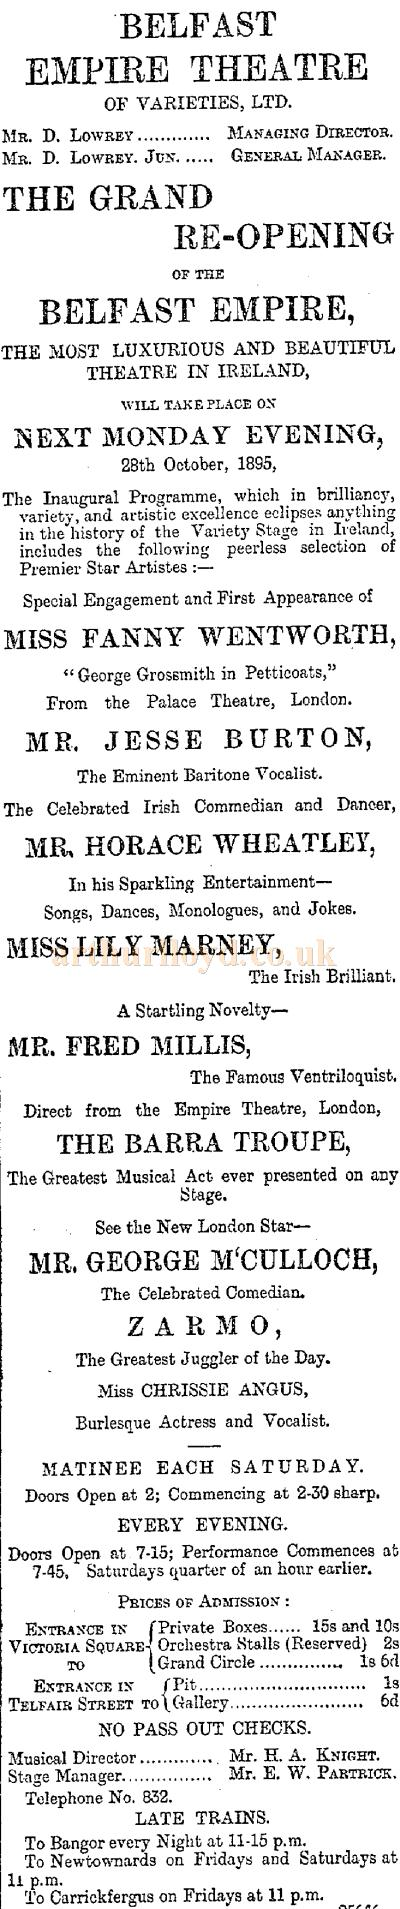 An advertisement carried in the ERA of the 25th of October 1895 publicising the Grand Reopening of the Empire Theatre, Belfast.